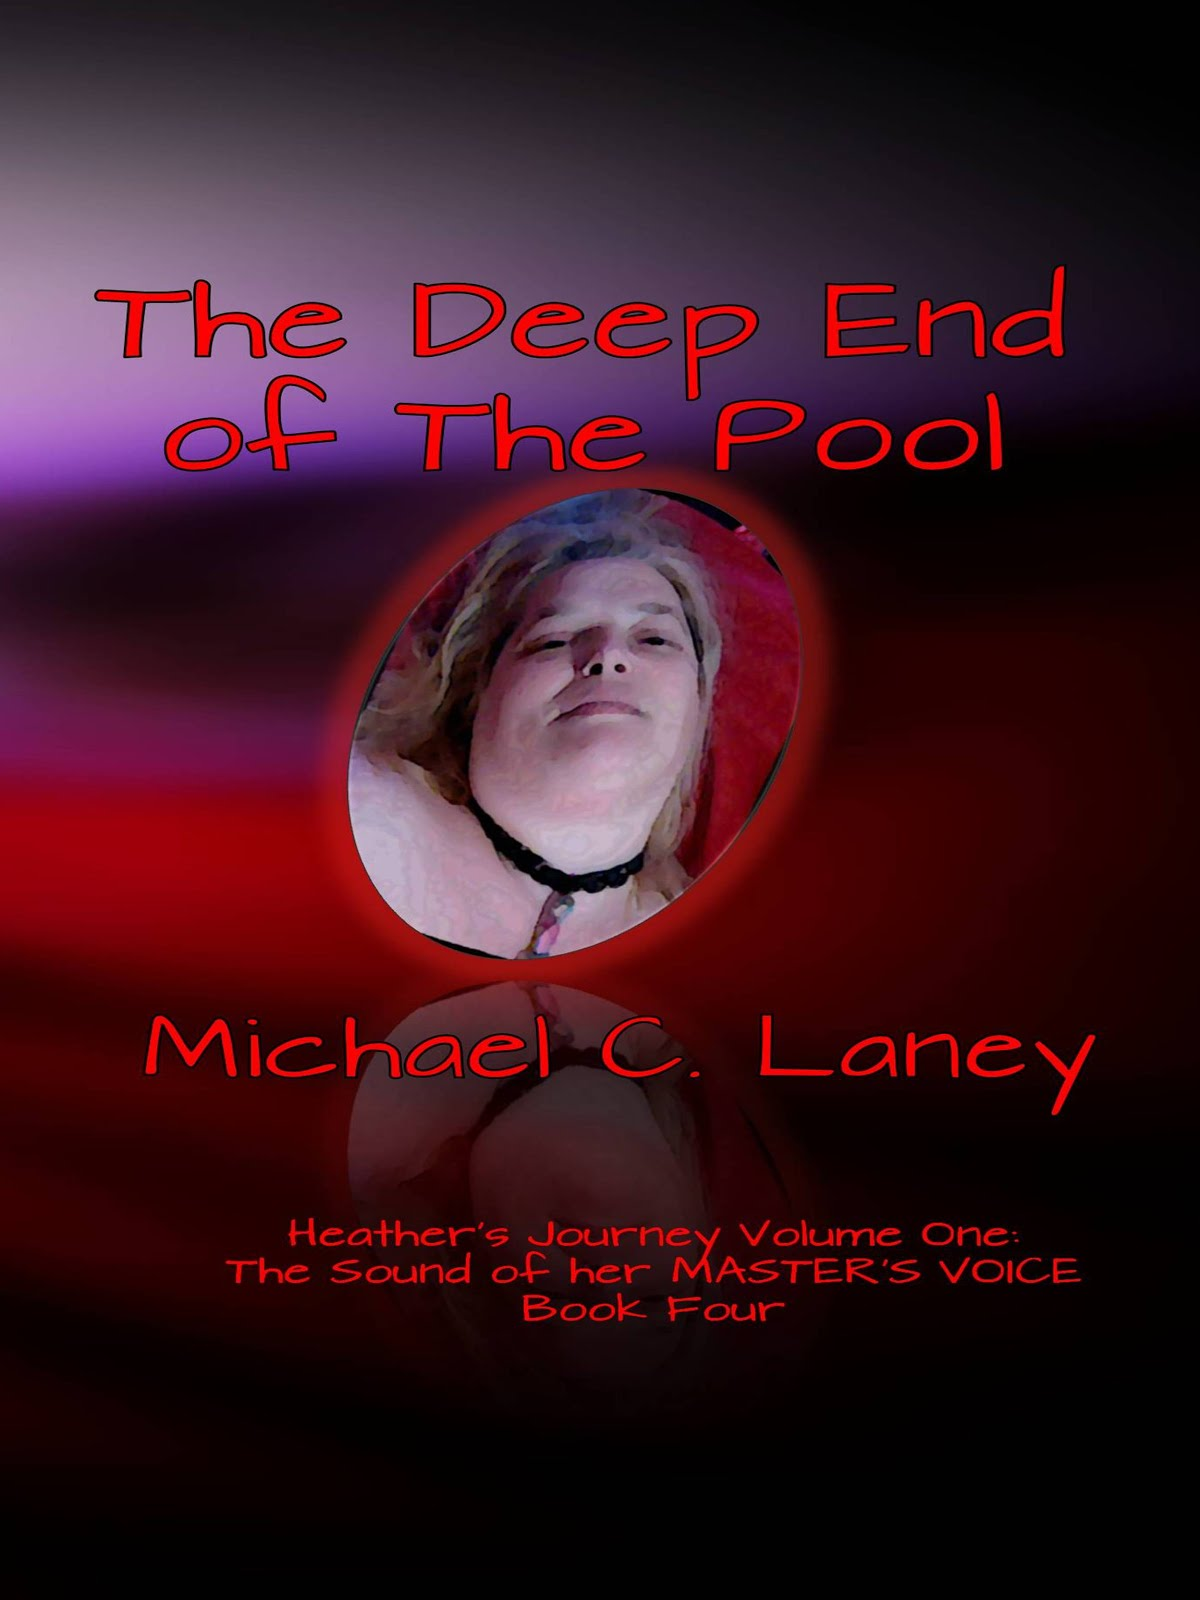 Pre-Order The Deep End of the Pool